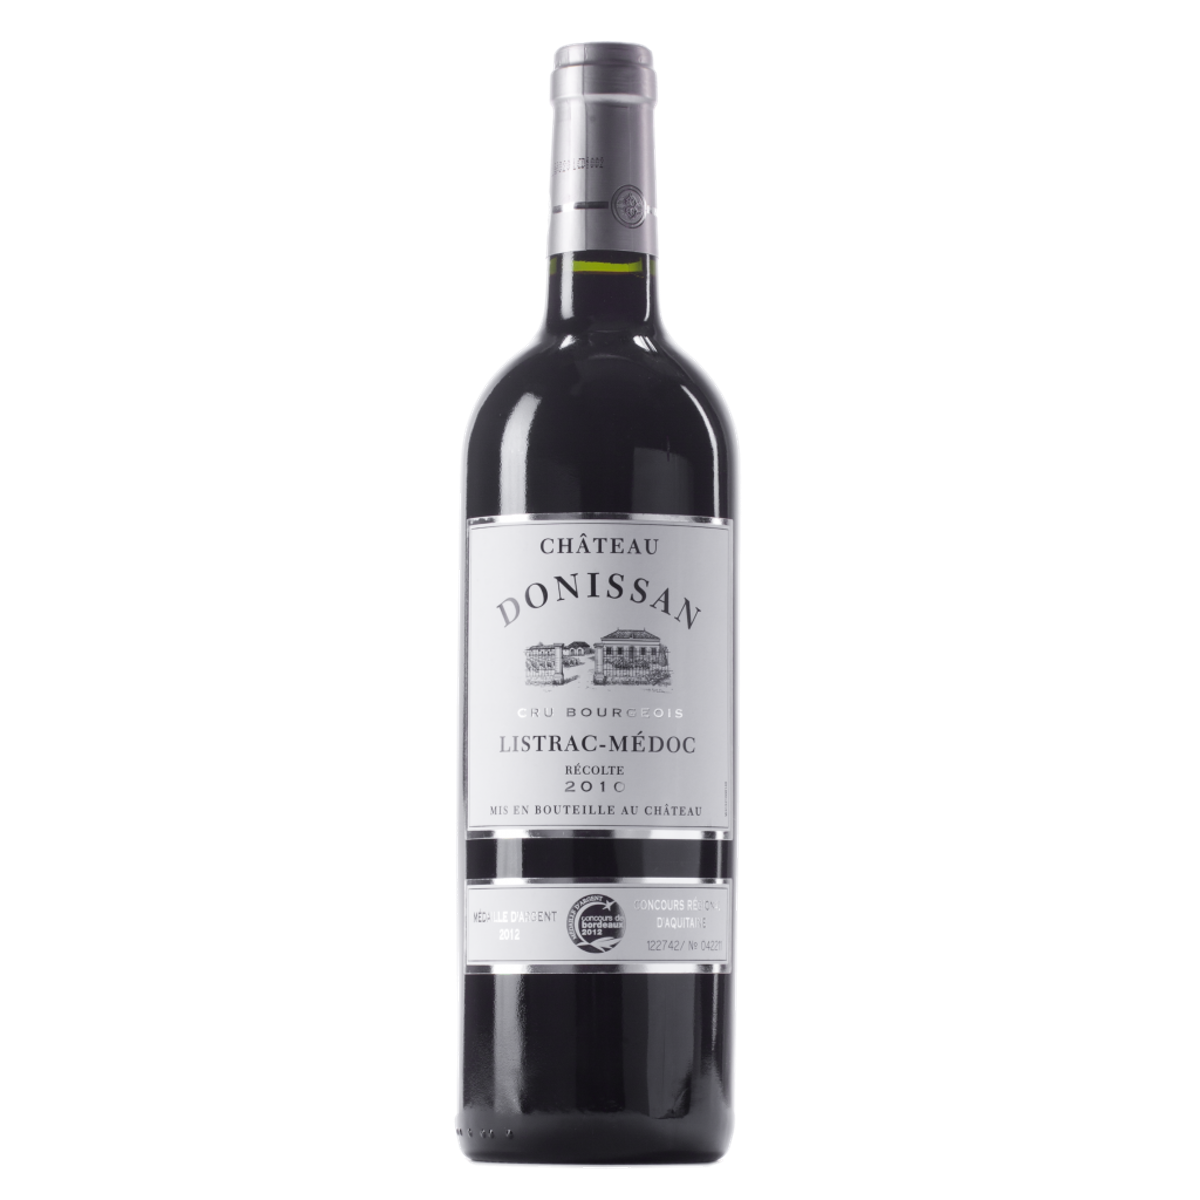 Listrac Medoc, Chateau Donissan, 2012